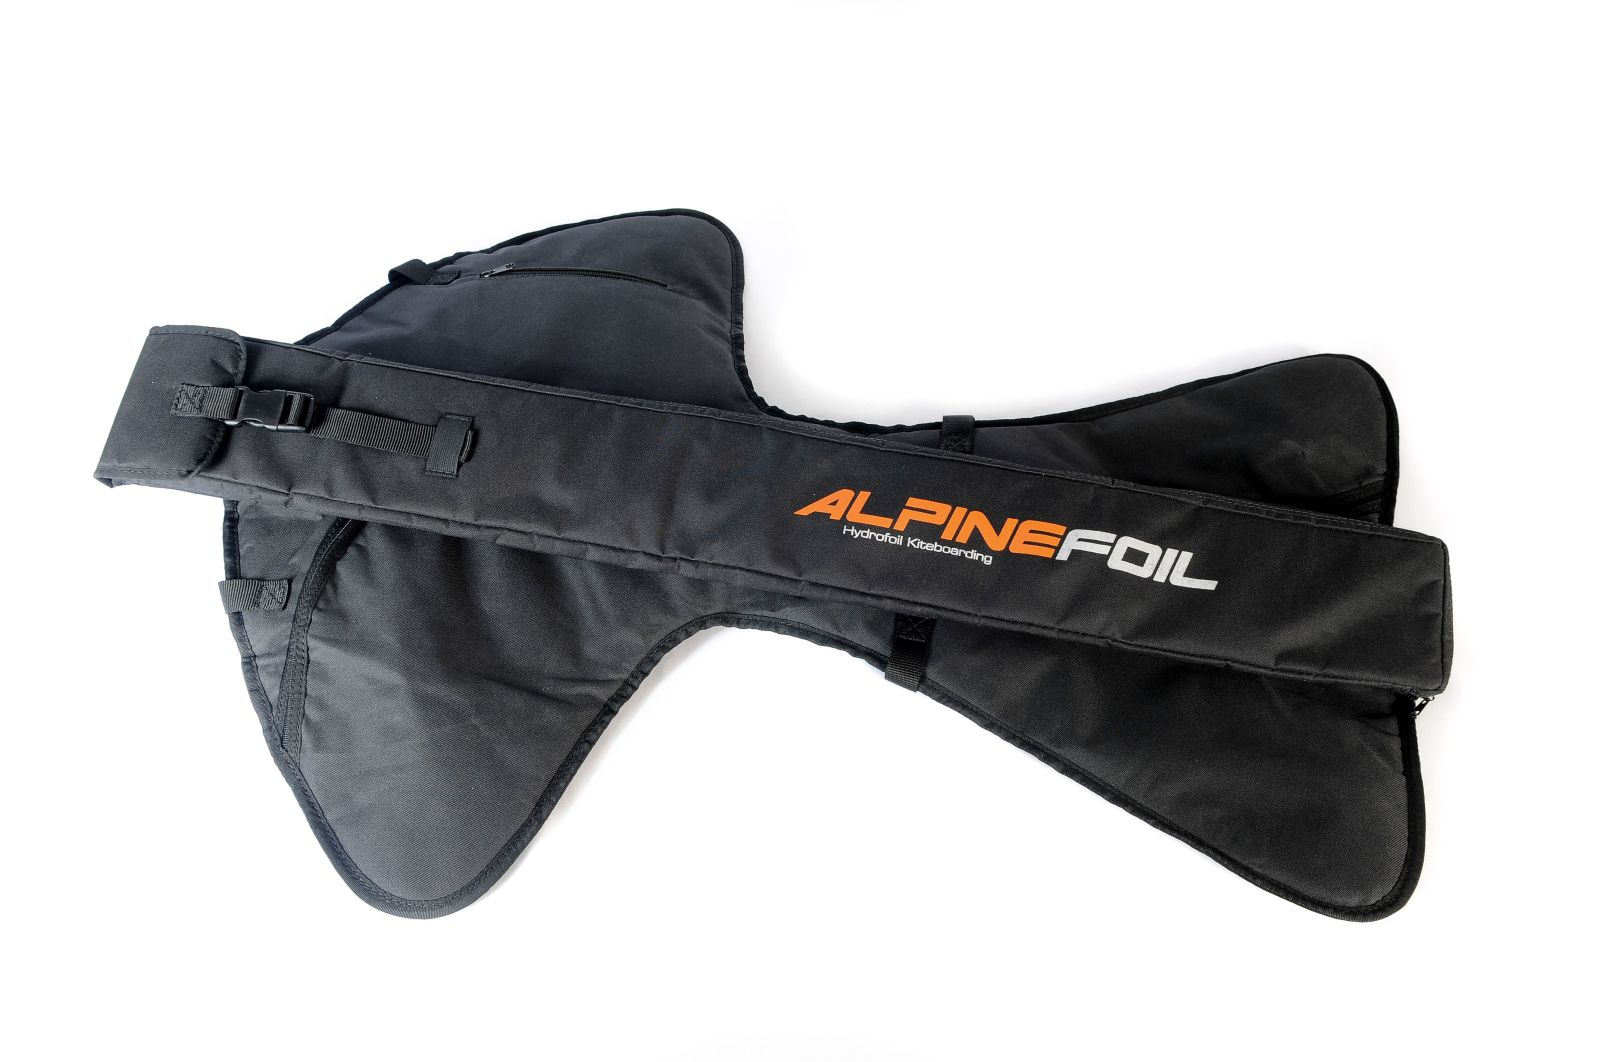 Kitefoil alpinefoil carbon bag boardbag footstrap accessories 3140